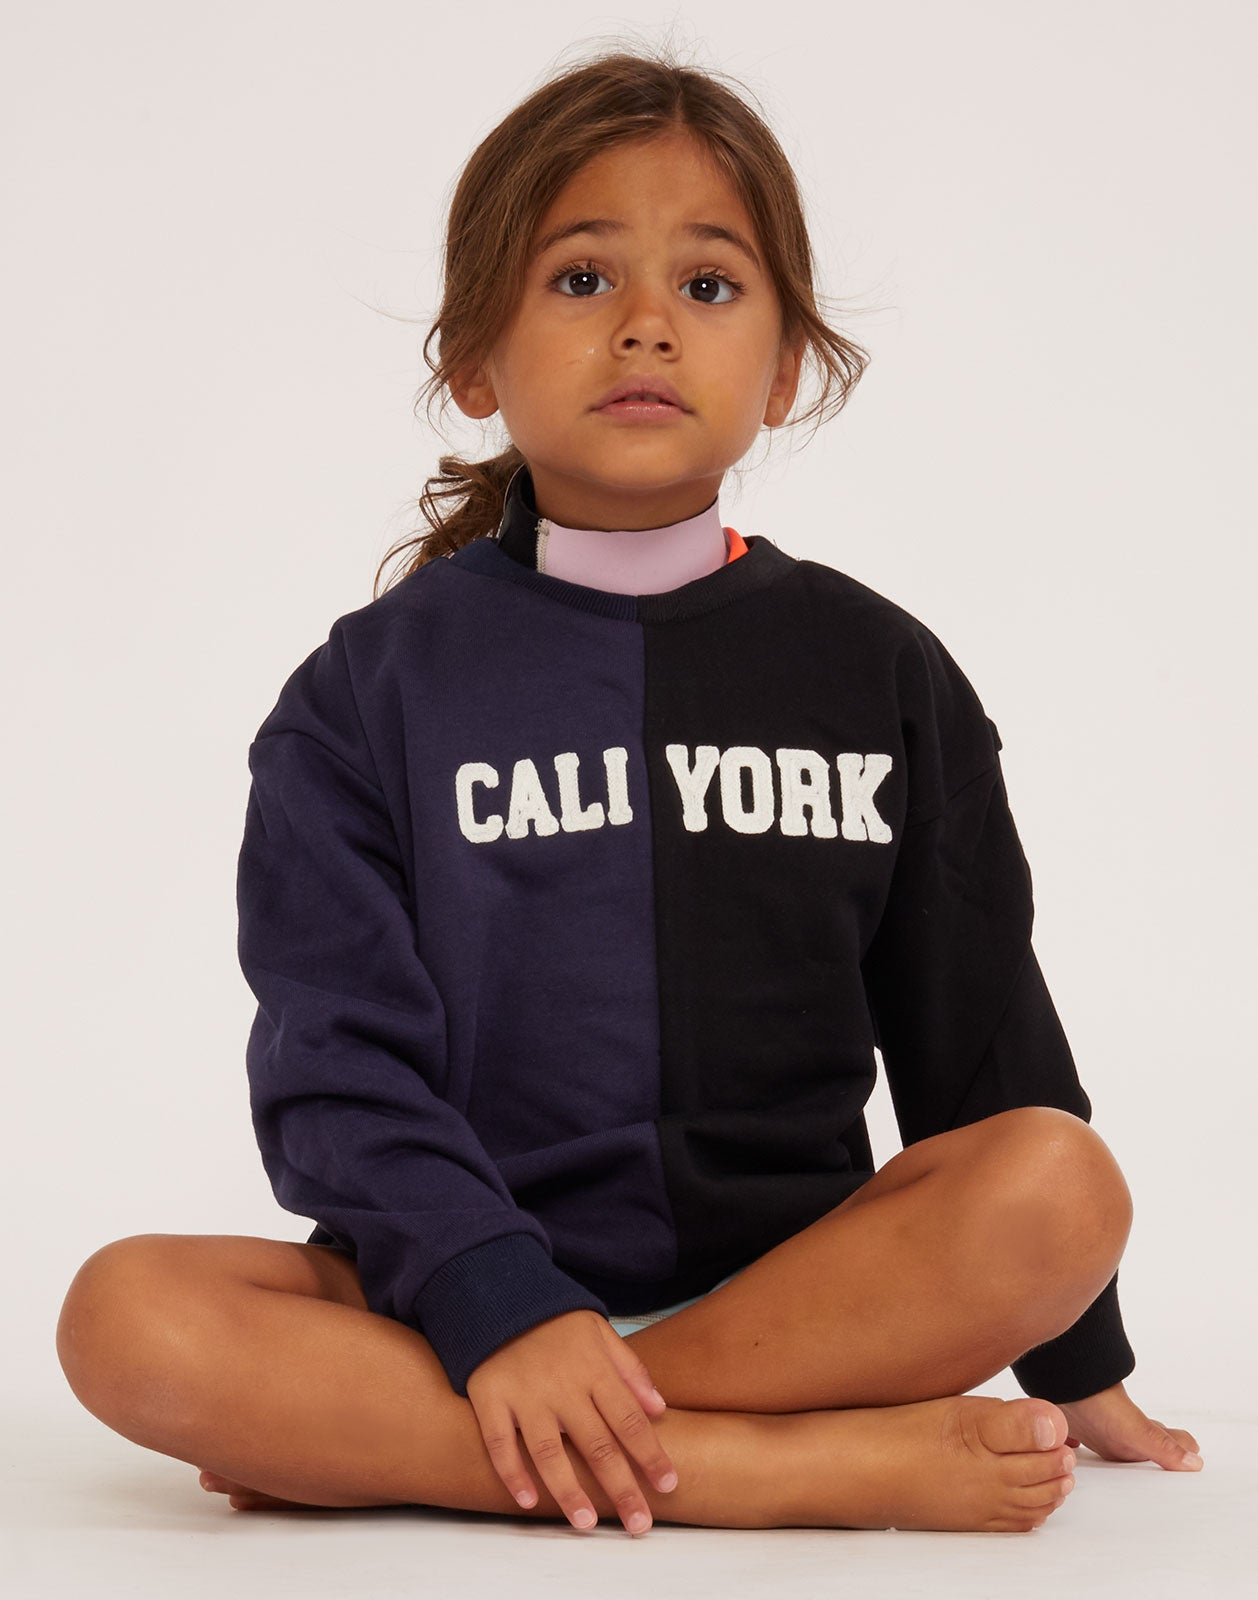 Kid's CaliYork cotton sweatshirt in navy and black.